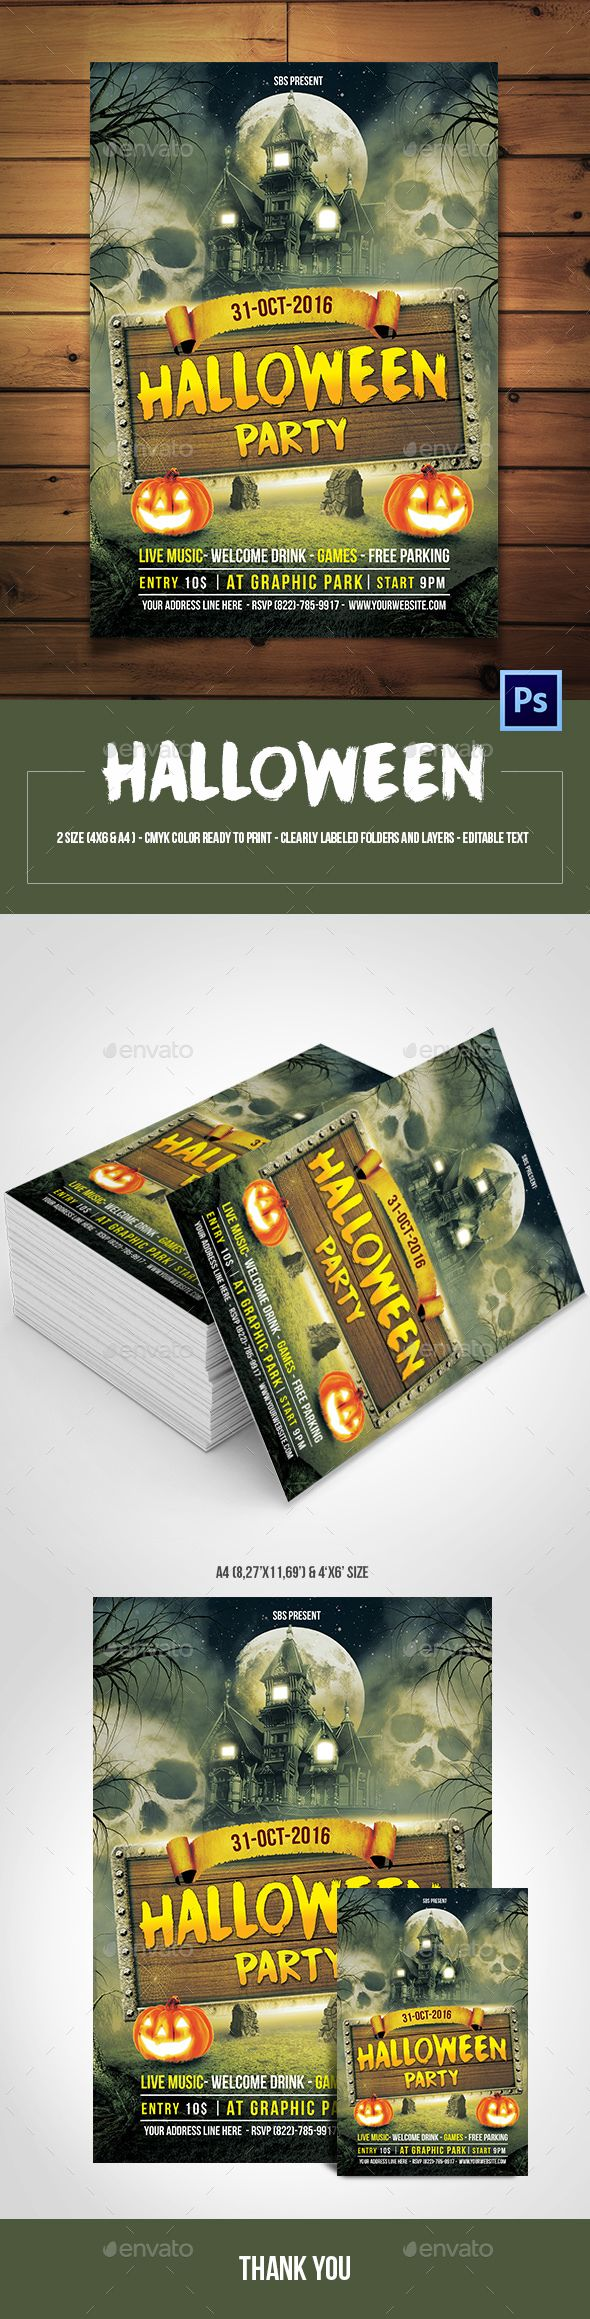 Halloween Party Flyer Template | Flyer template, Halloween and Flyers